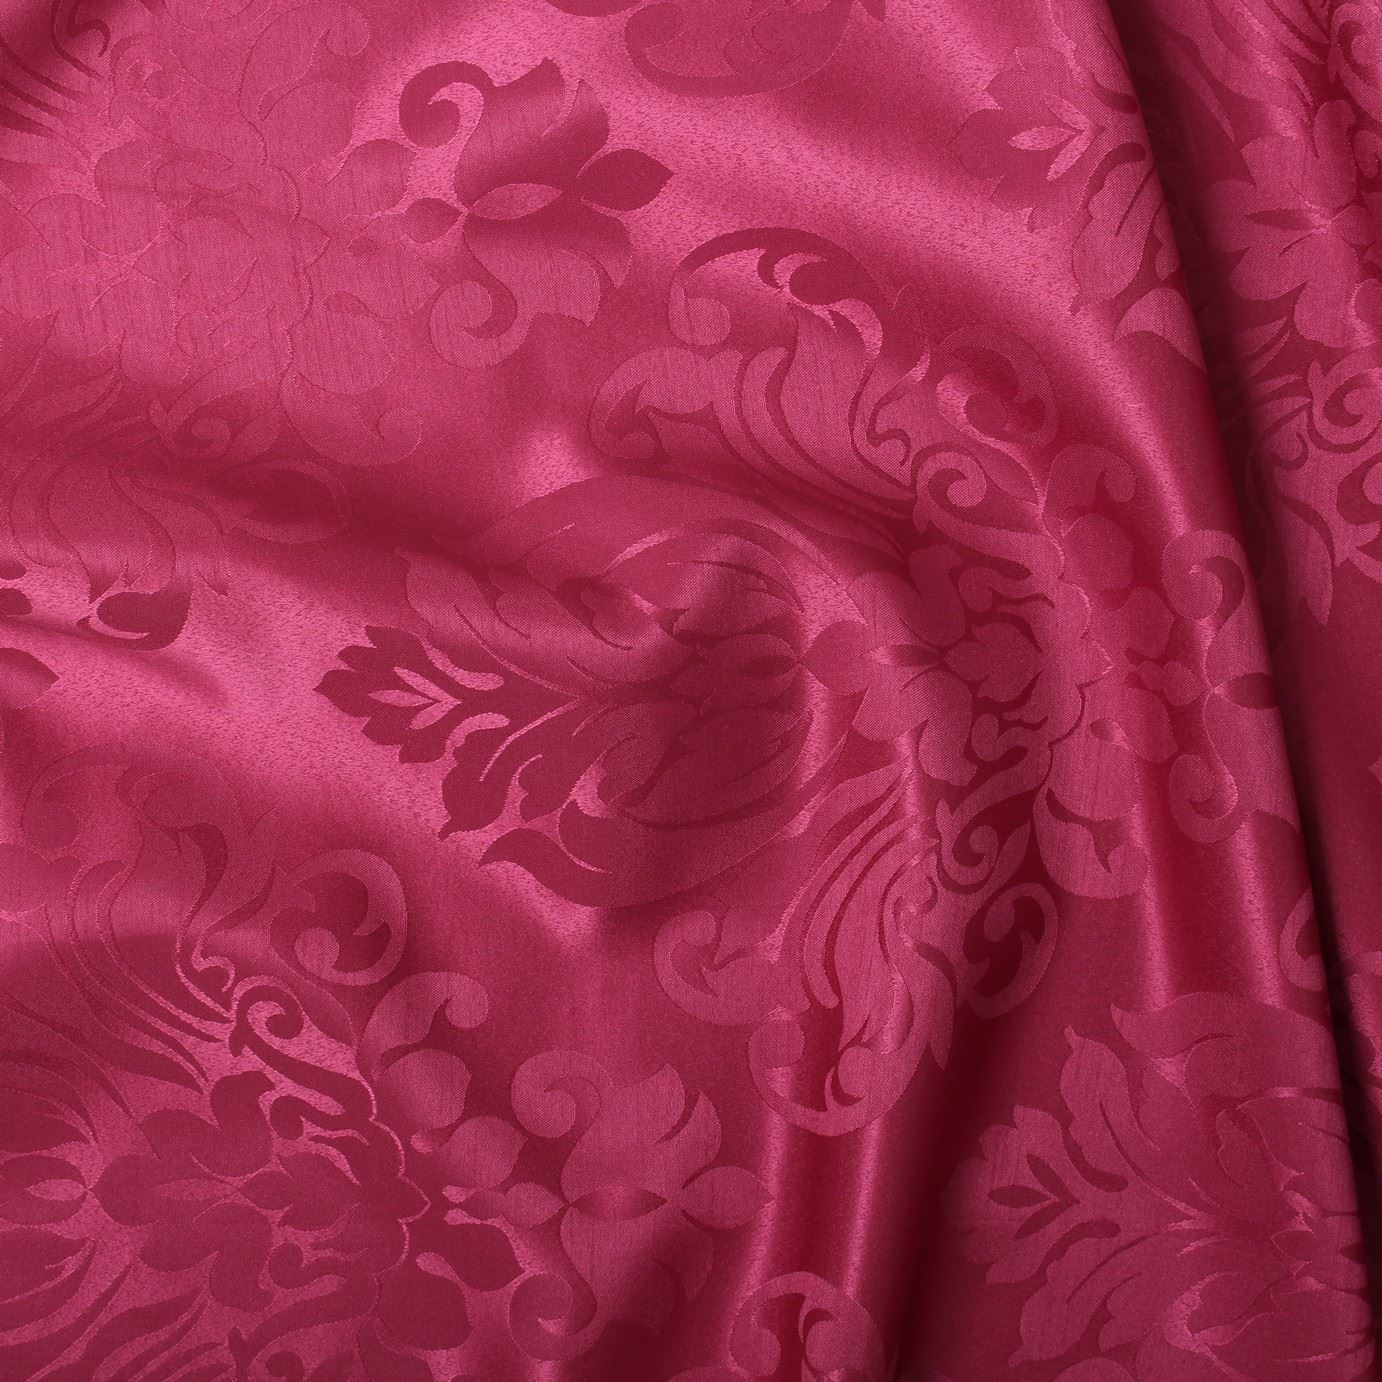 FLORAL-DAMASK-FAUX-SILK-JACQUARD-CURTAIN-UPHOLSTERY-FABRIC-MATERIAL-12-COLOURS thumbnail 32